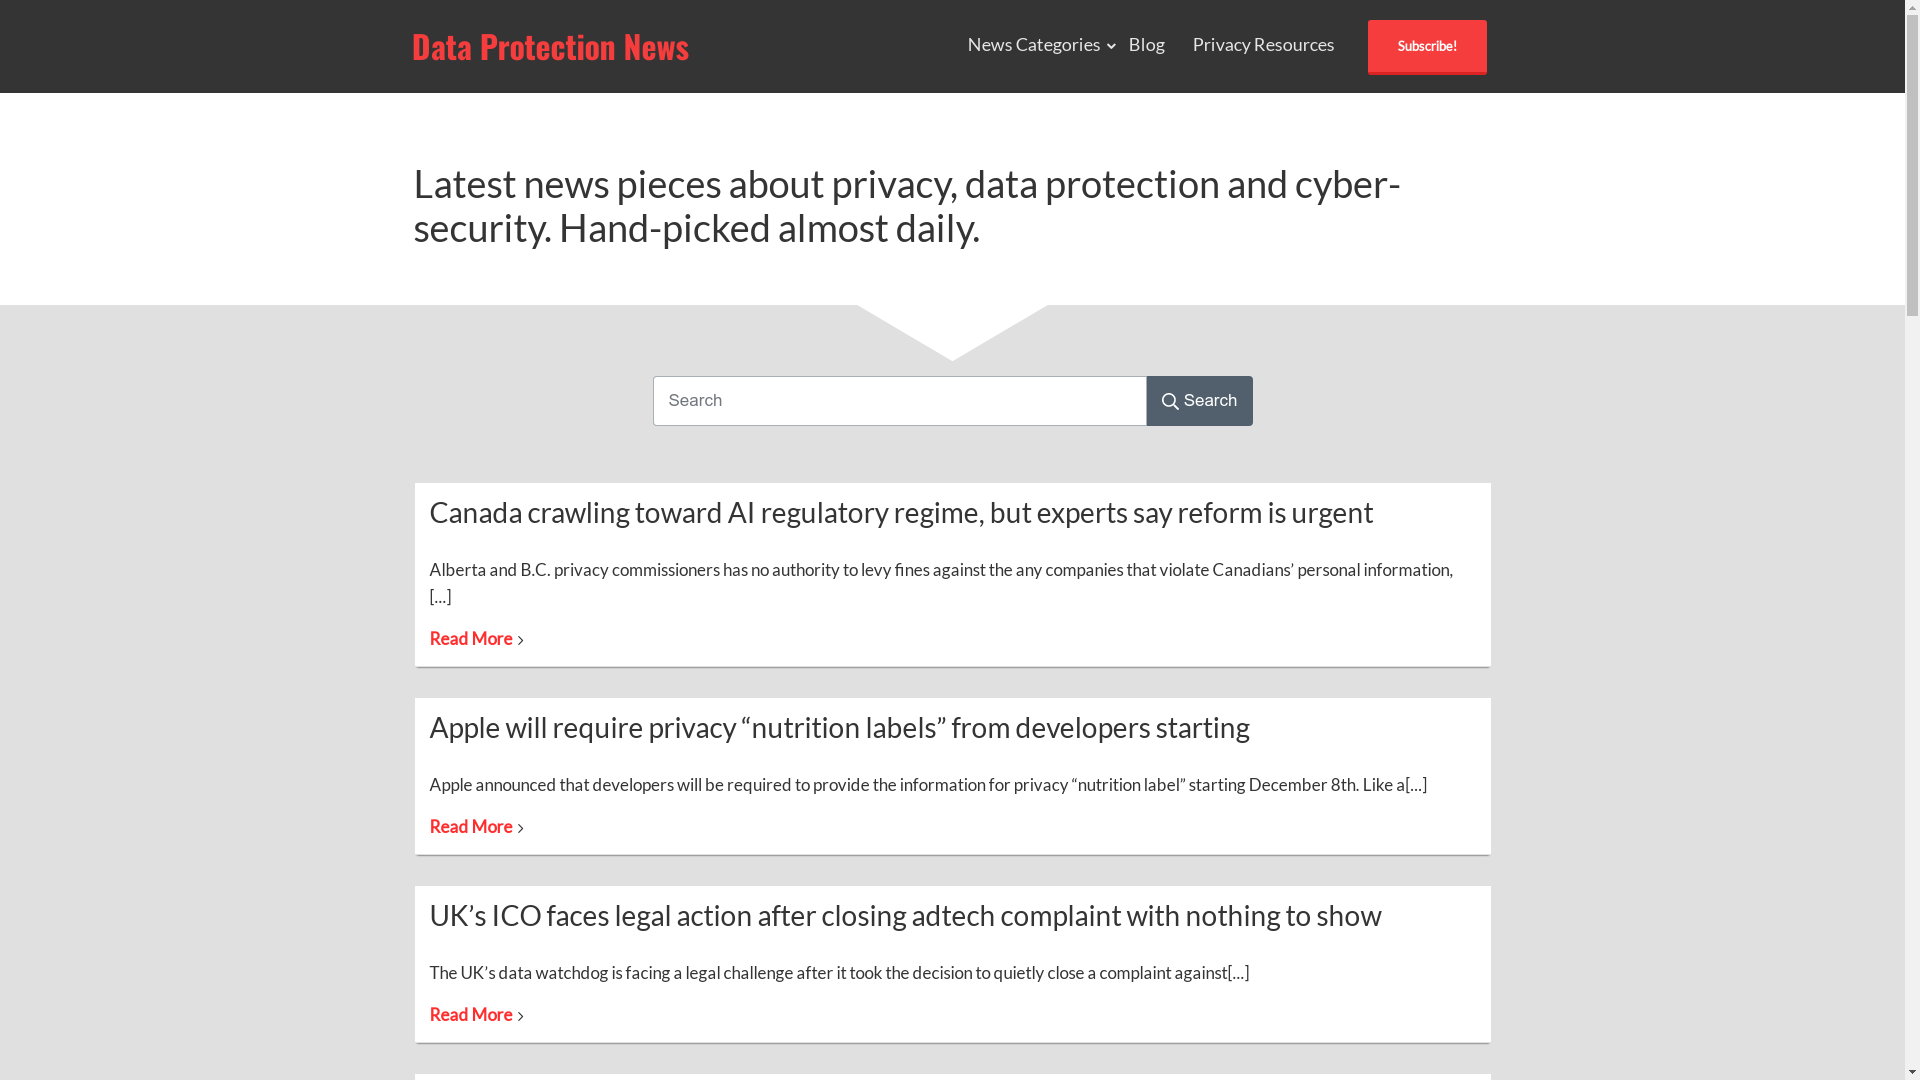 Data protection news